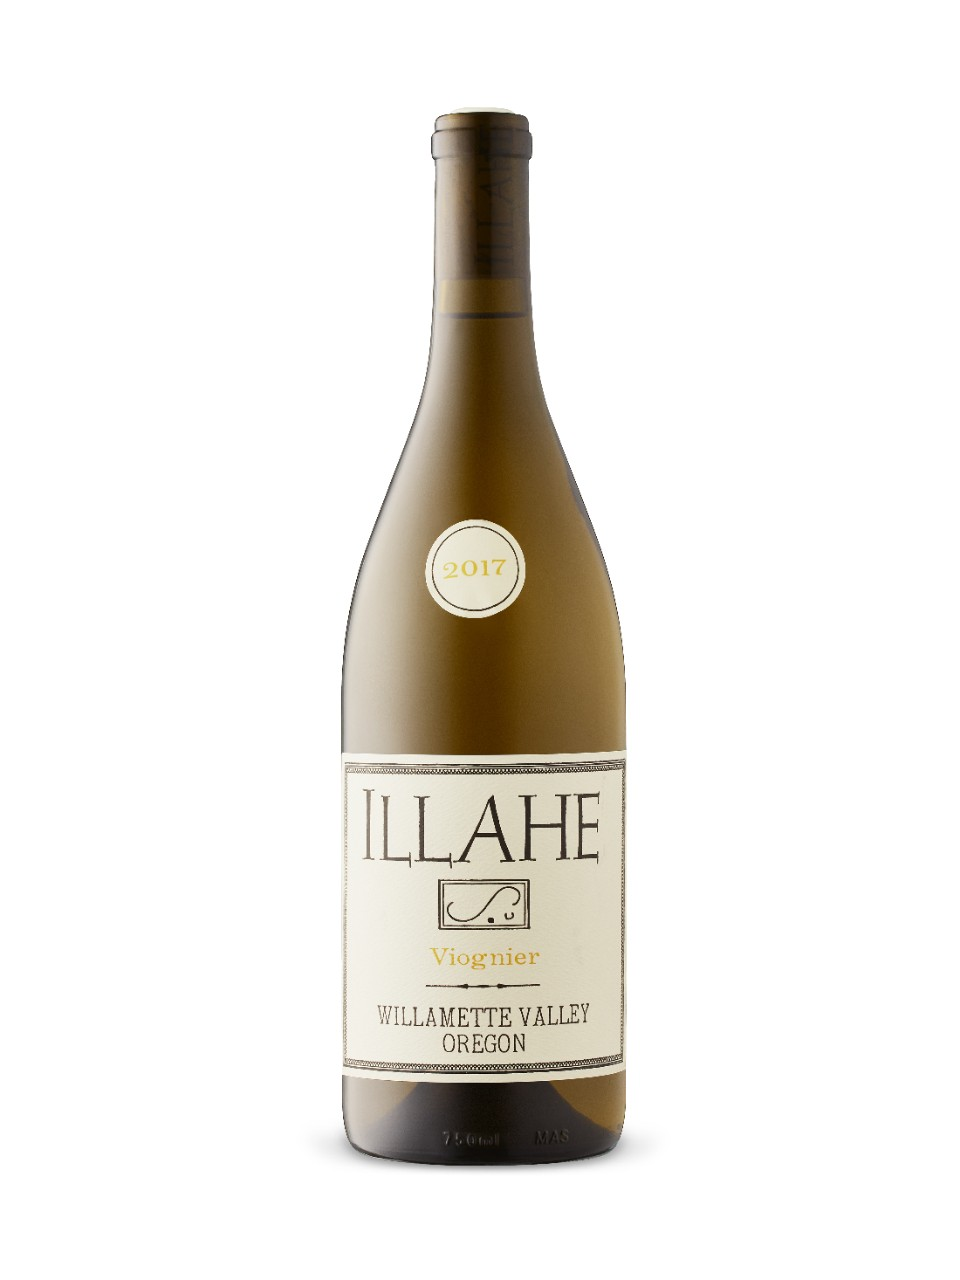 Illahe Vineyards Viognier 2017